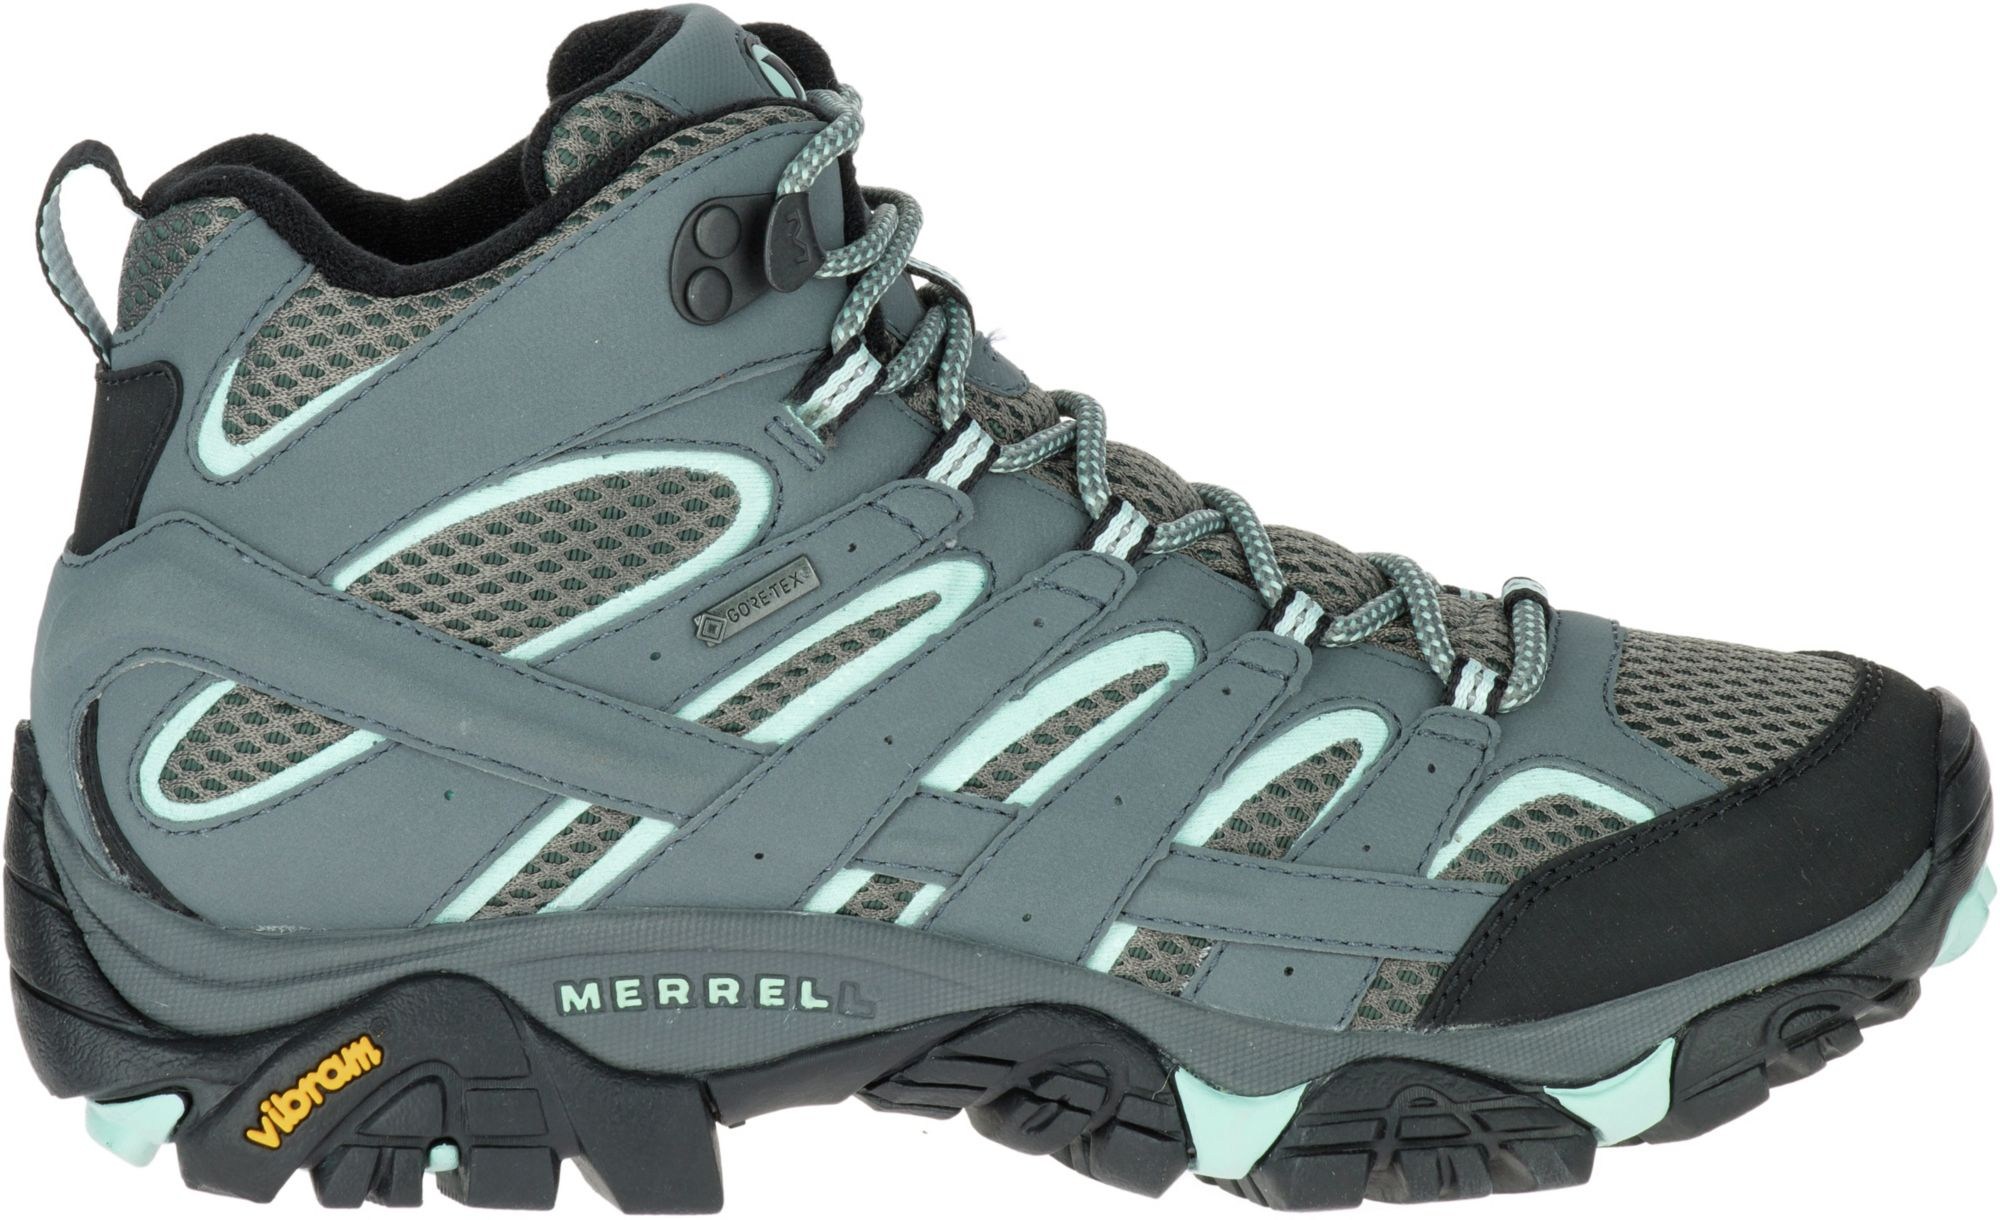 Merrell Women's Moab 2 Mid GORE-TEX Hiking Boots| DICK'S Sporting ...